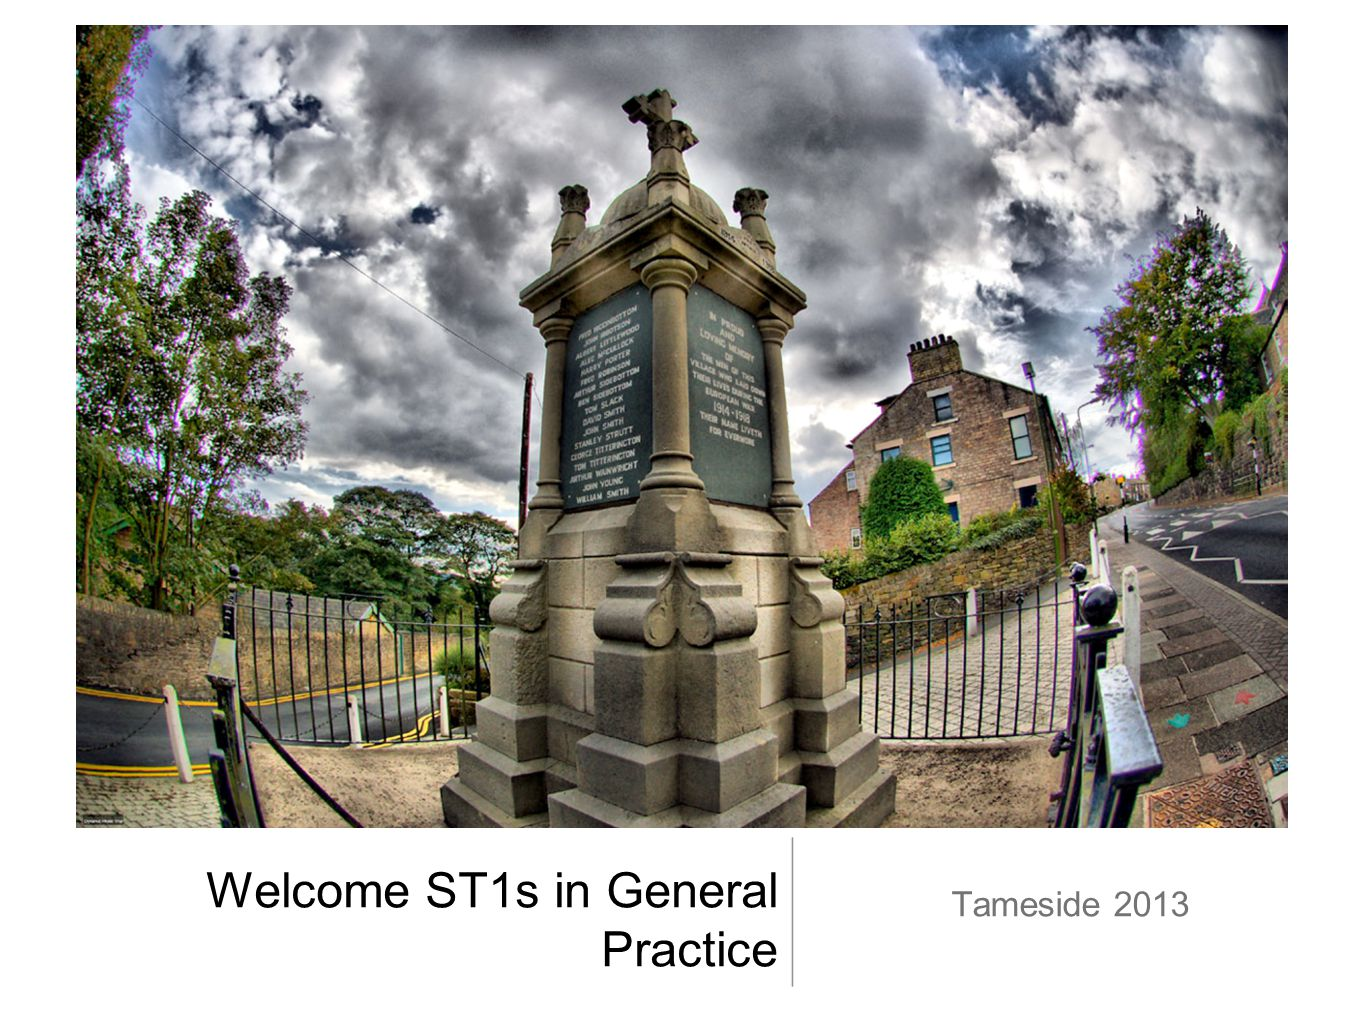 Welcome ST1s in General Practice Tameside 2013